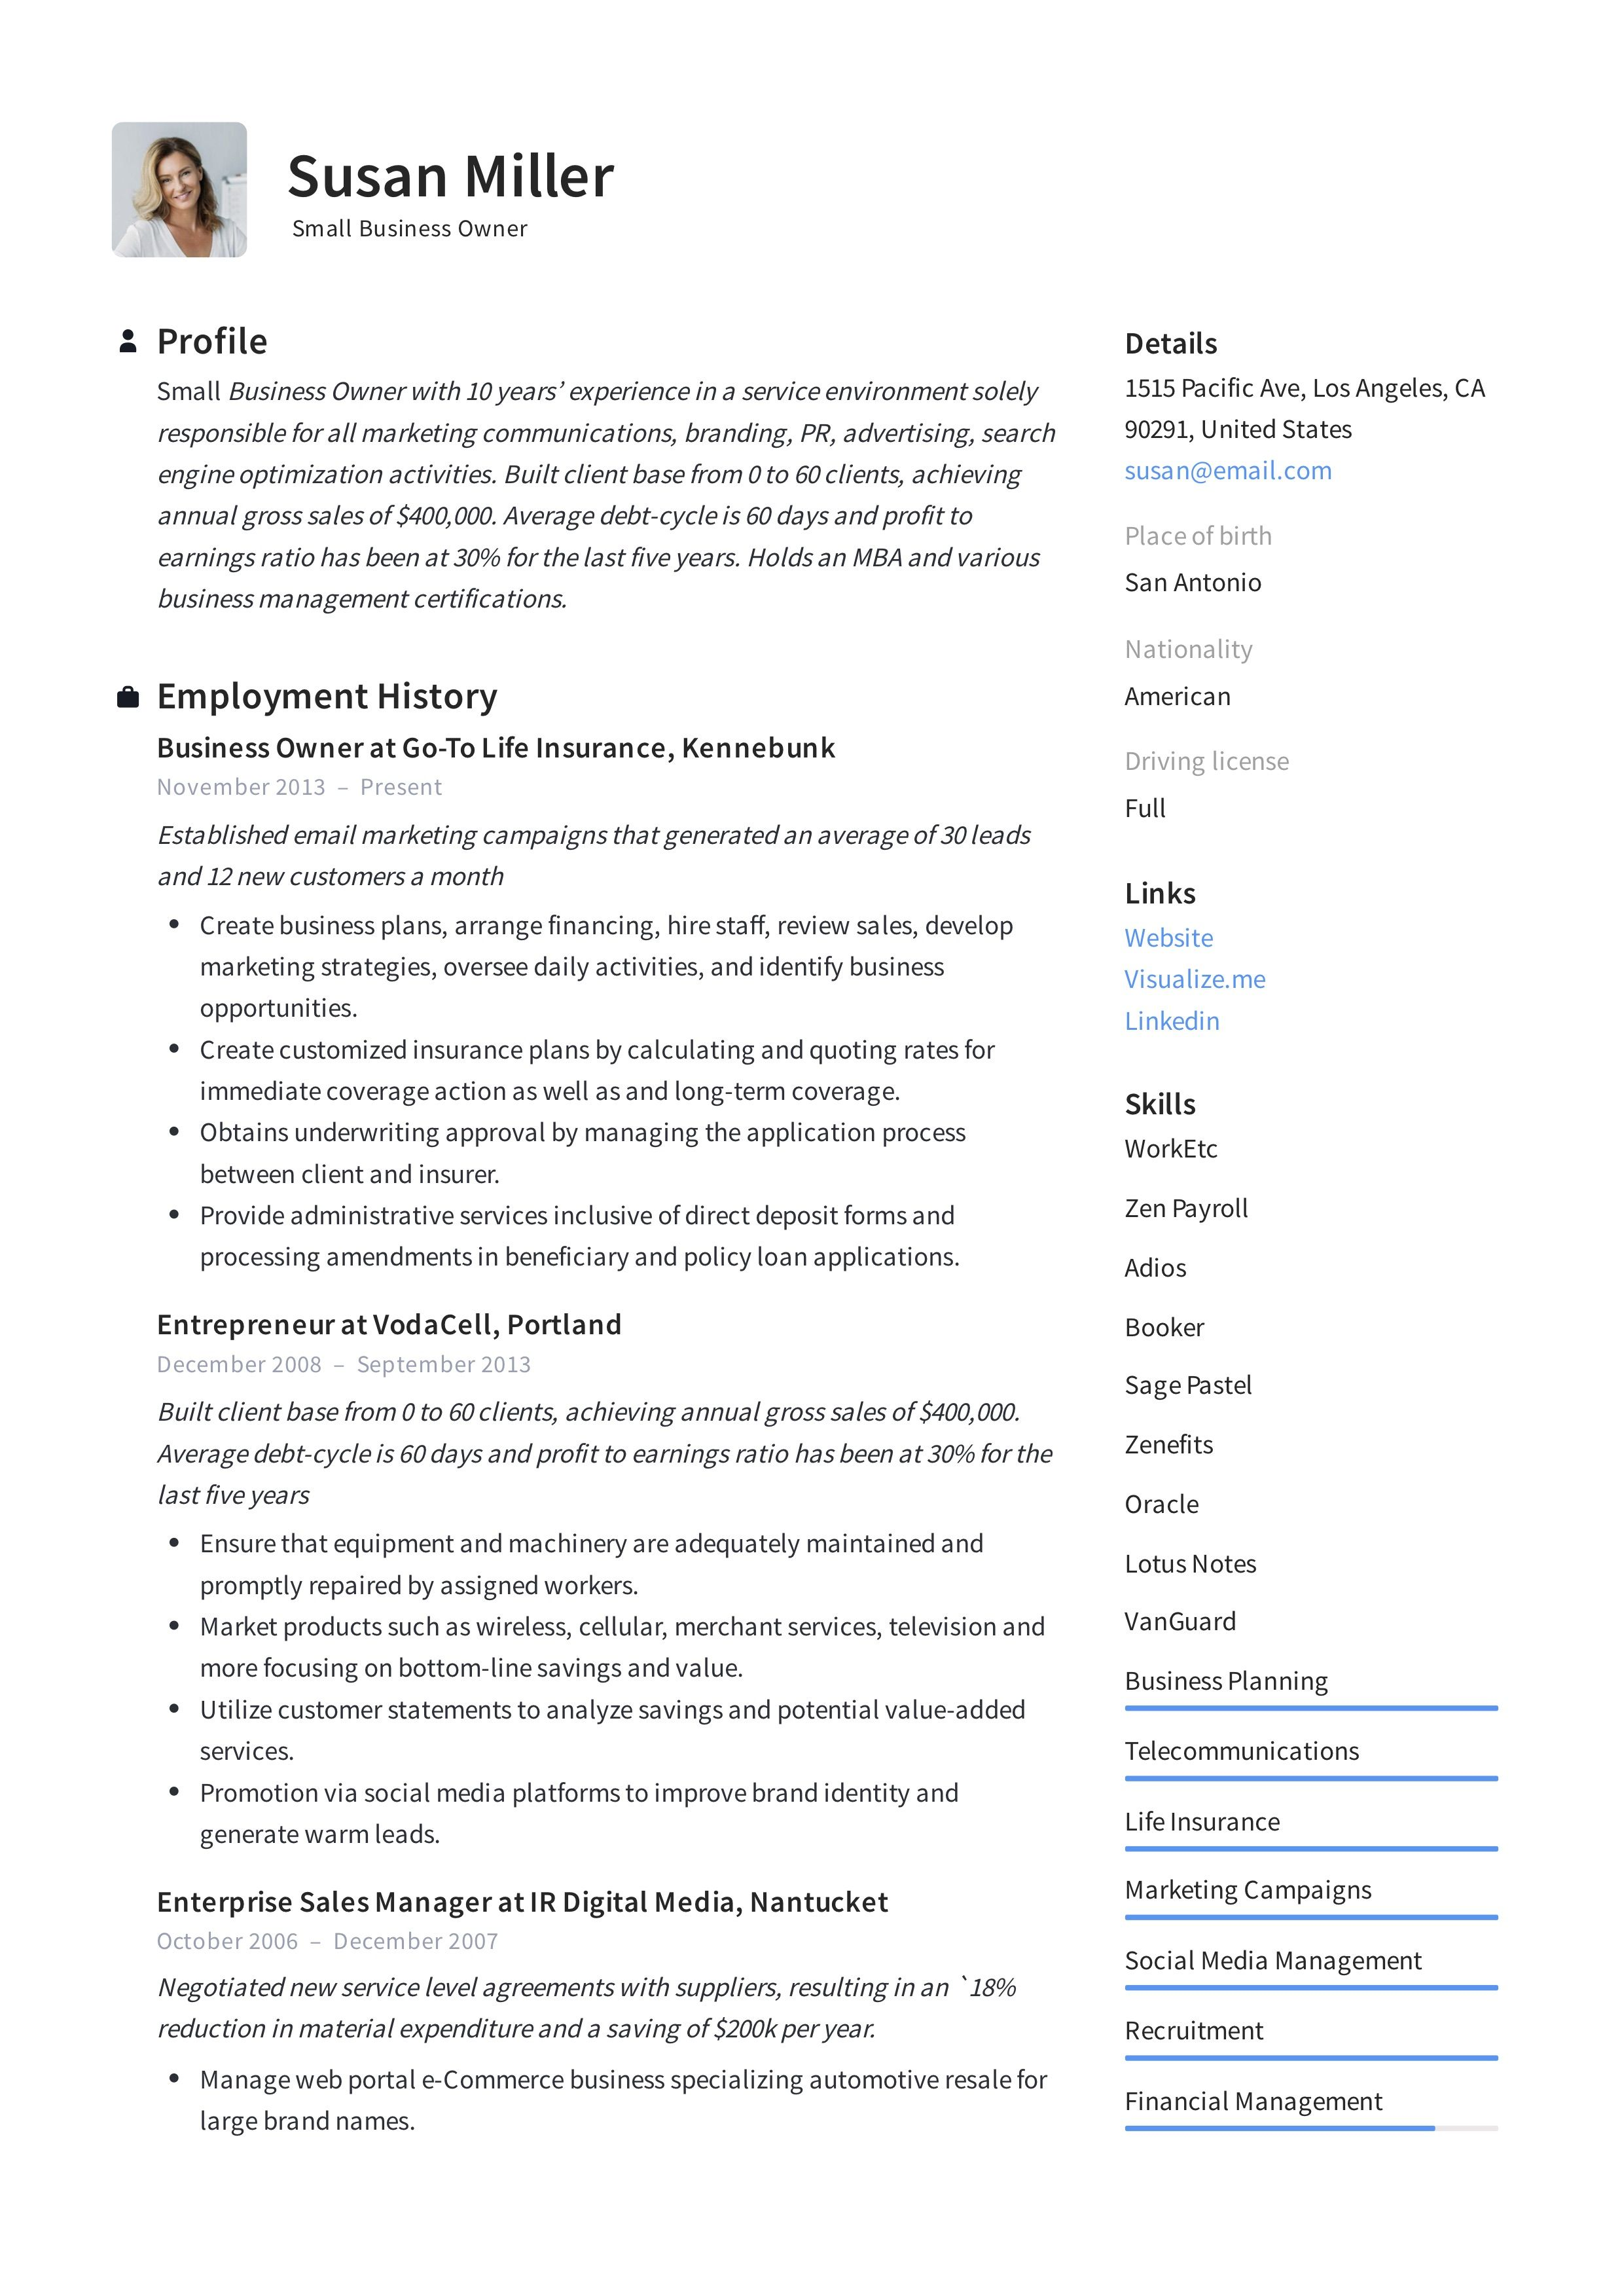 Modern Small Business Owner Resume, template, design, tips